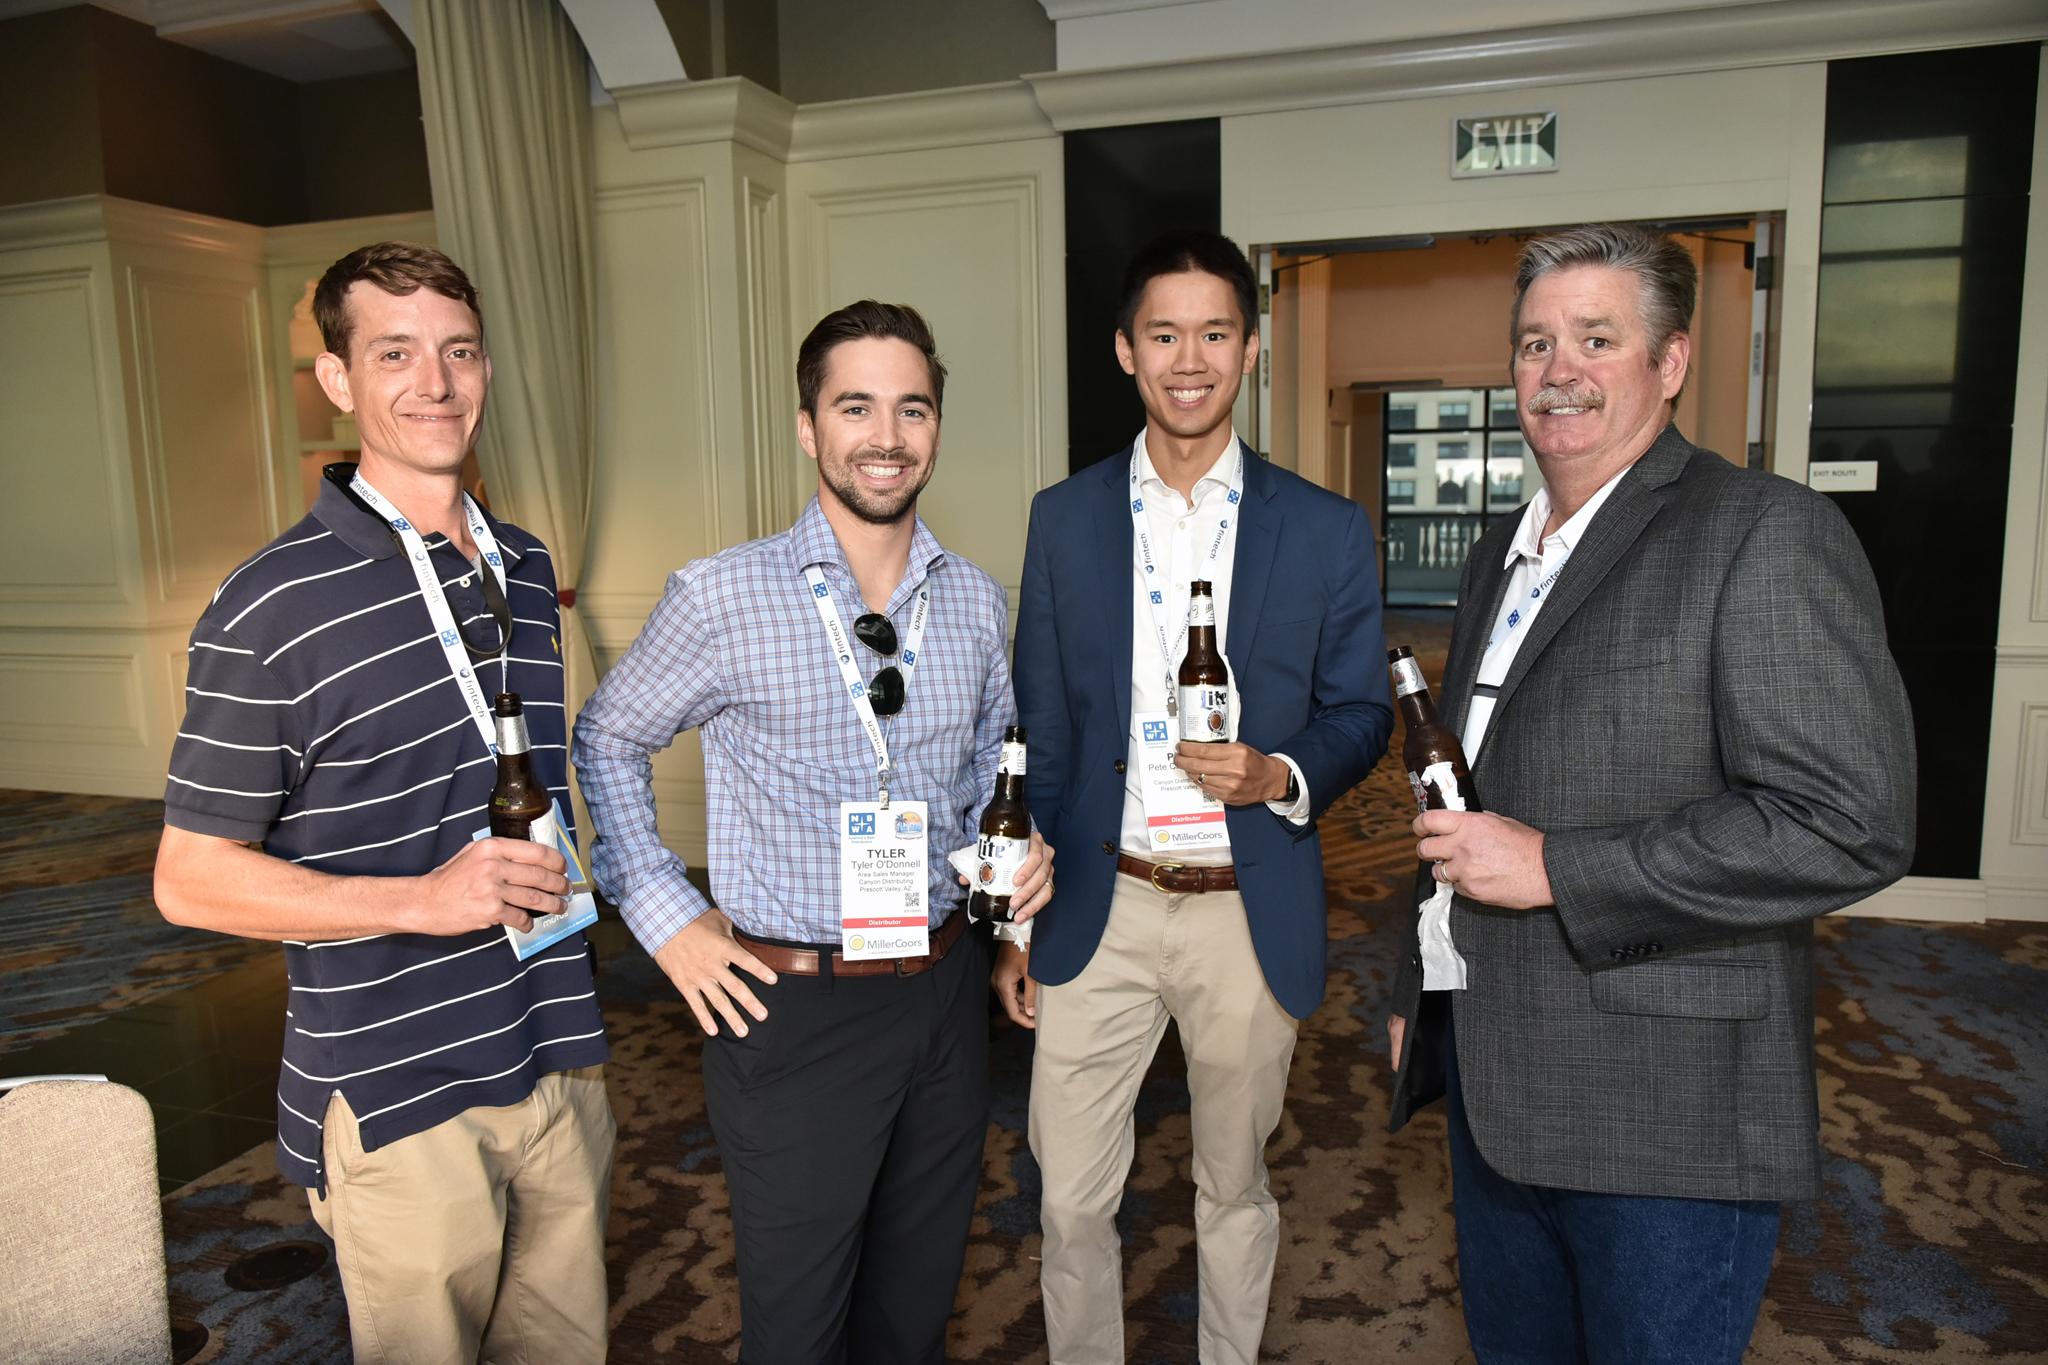 Annual Convention Nbwa Americas Beer Distributors